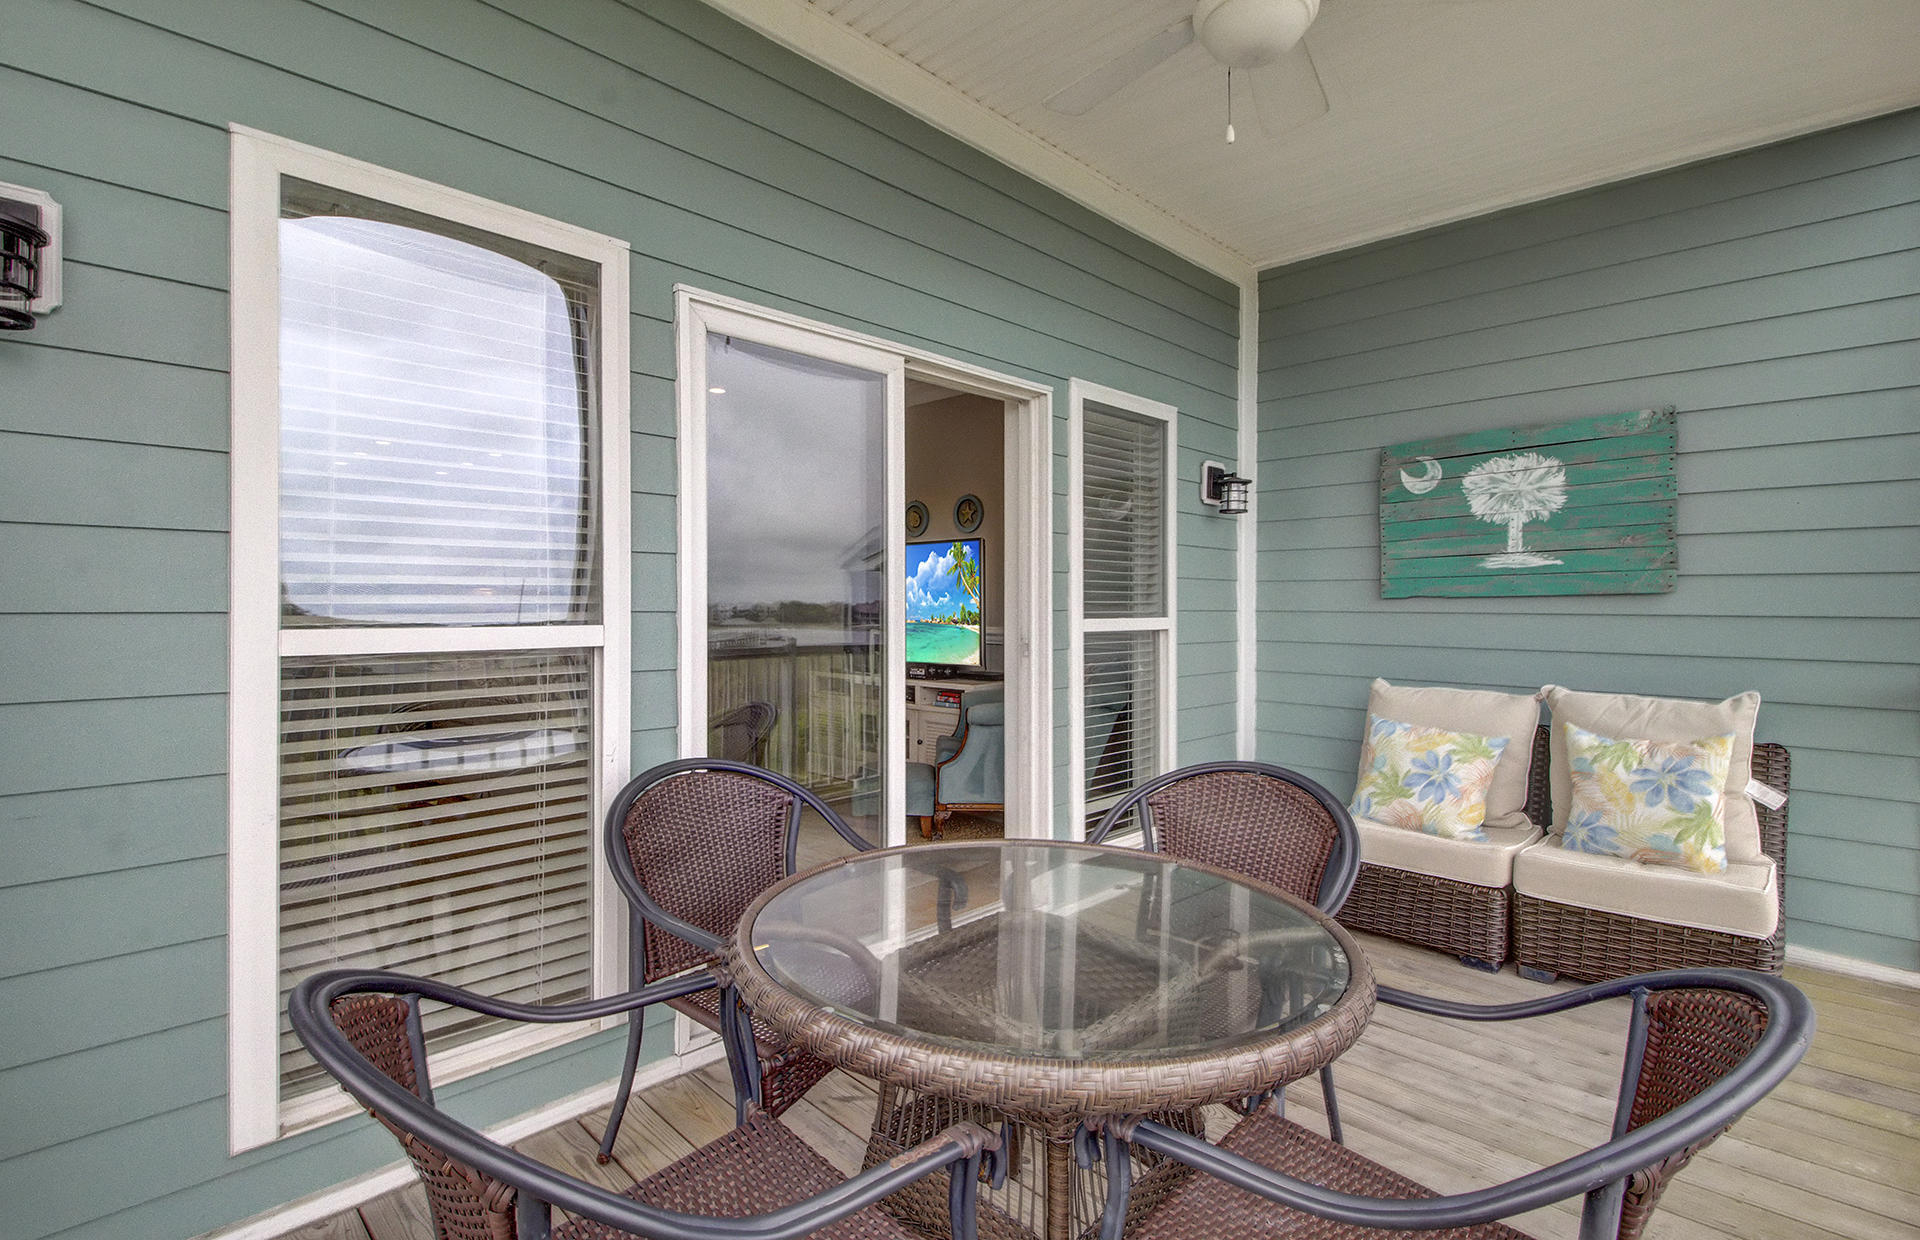 Waters Edge Homes For Sale - 80 2nd, Folly Beach, SC - 8